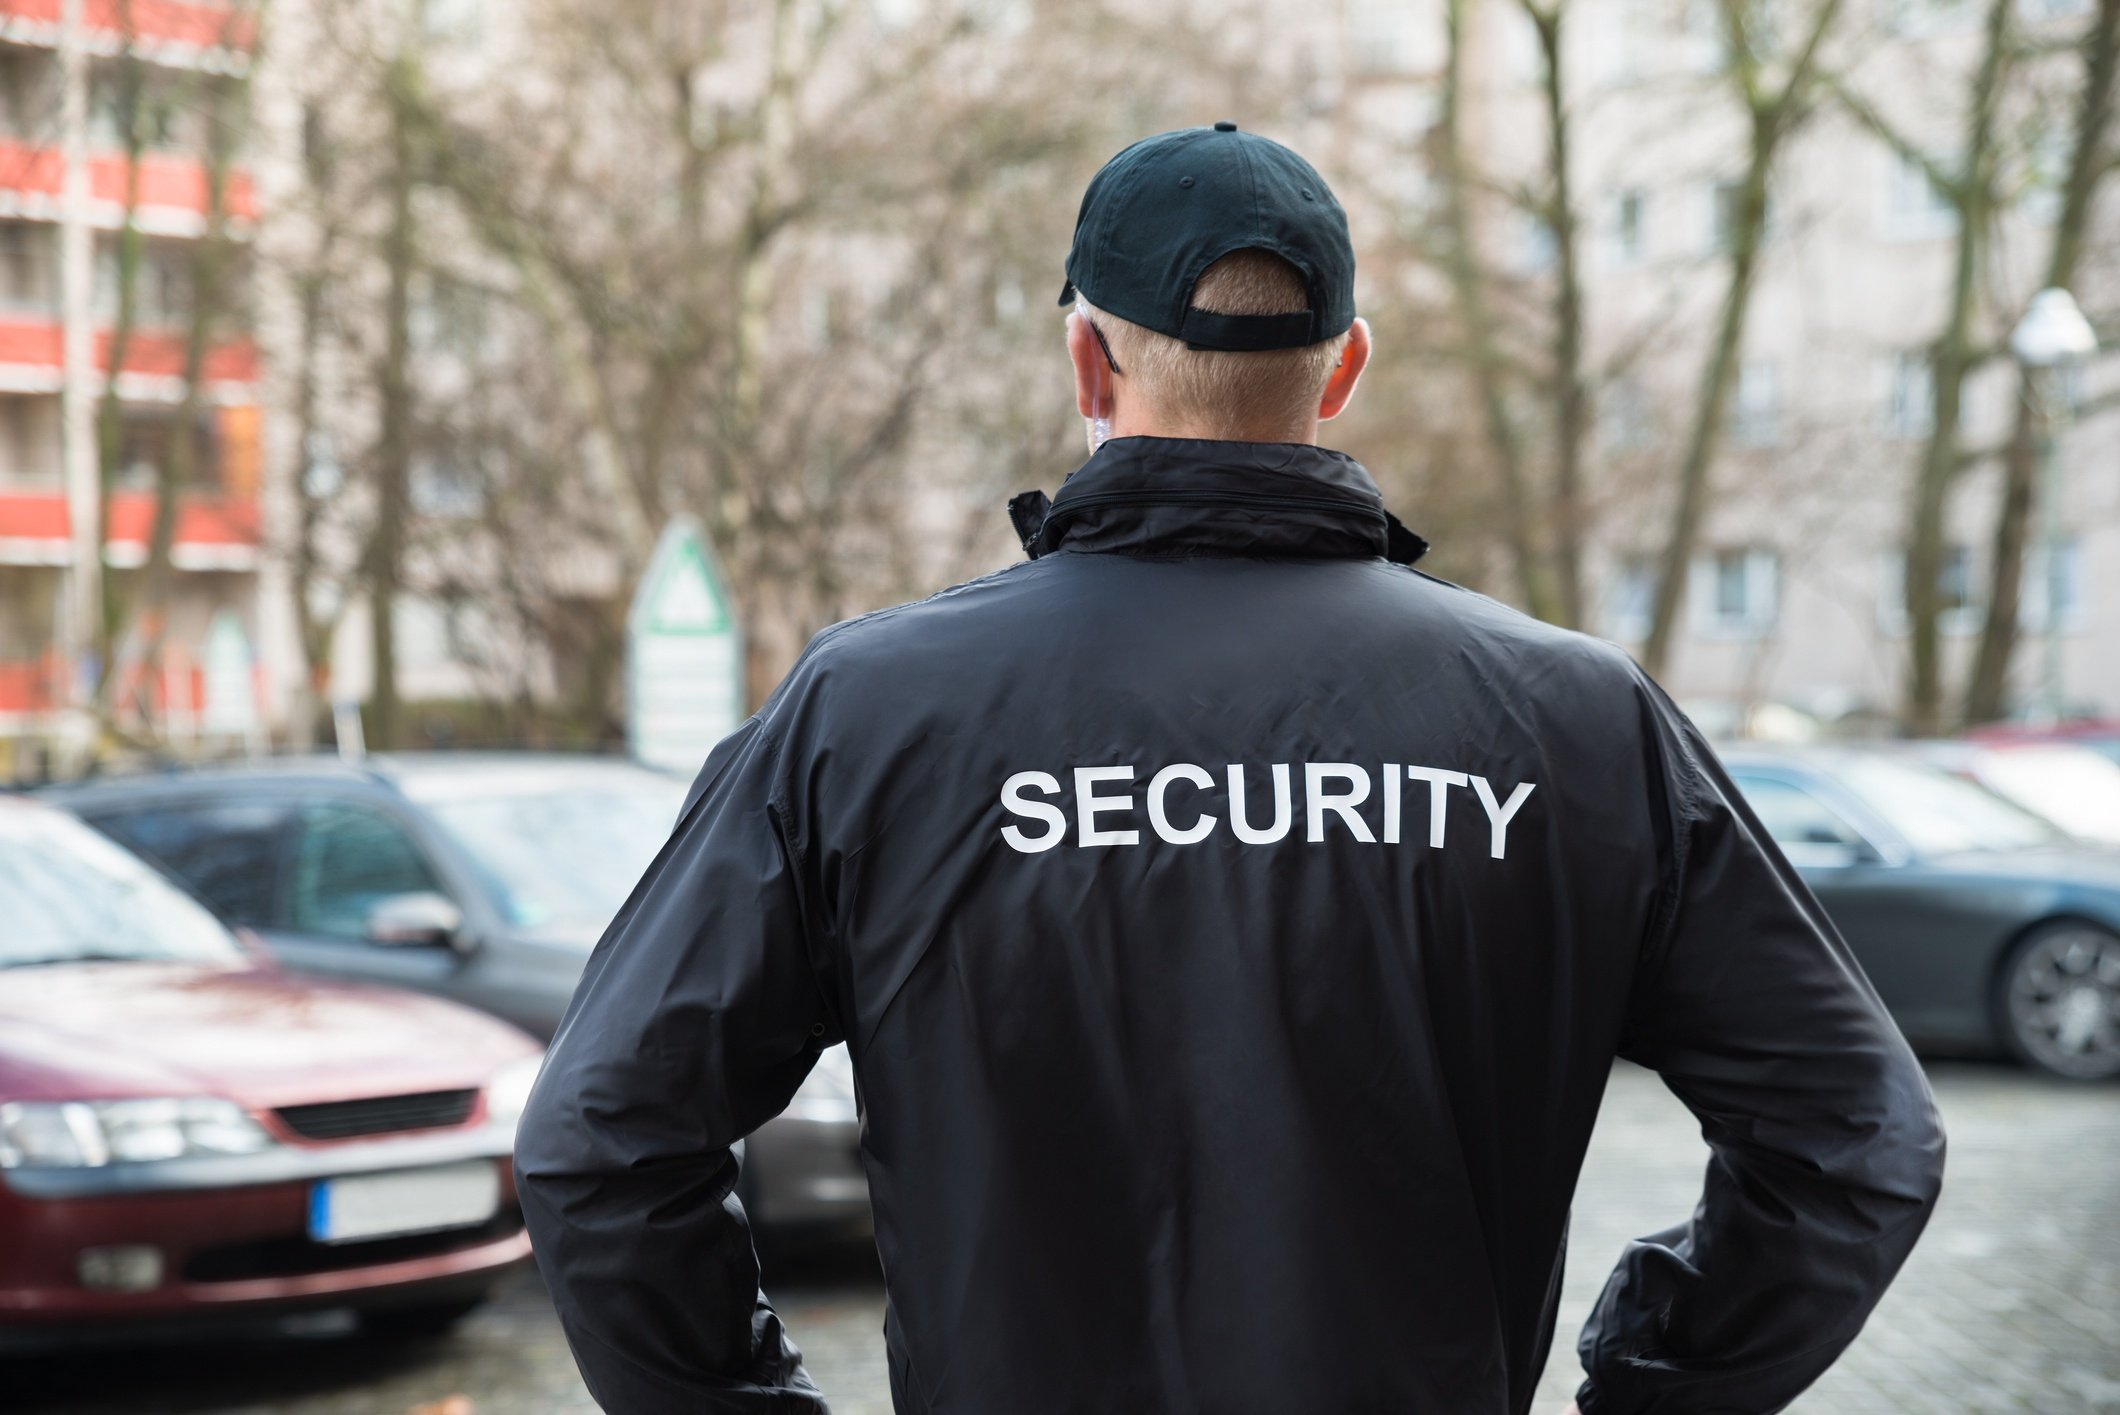 Security Guard Field Training Software Helps Train Guards Faster